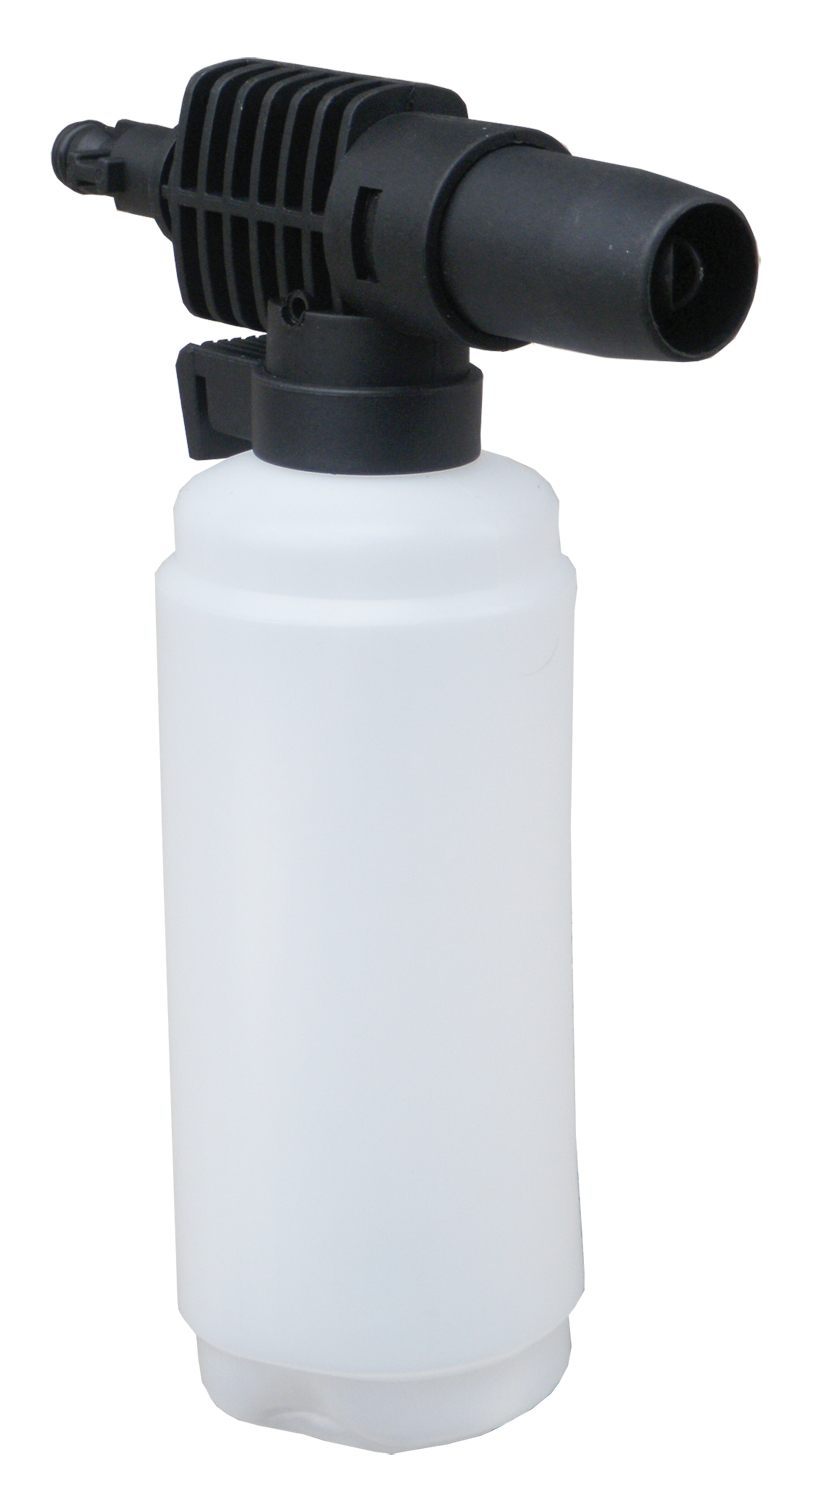 Soap bottle for pressure washer